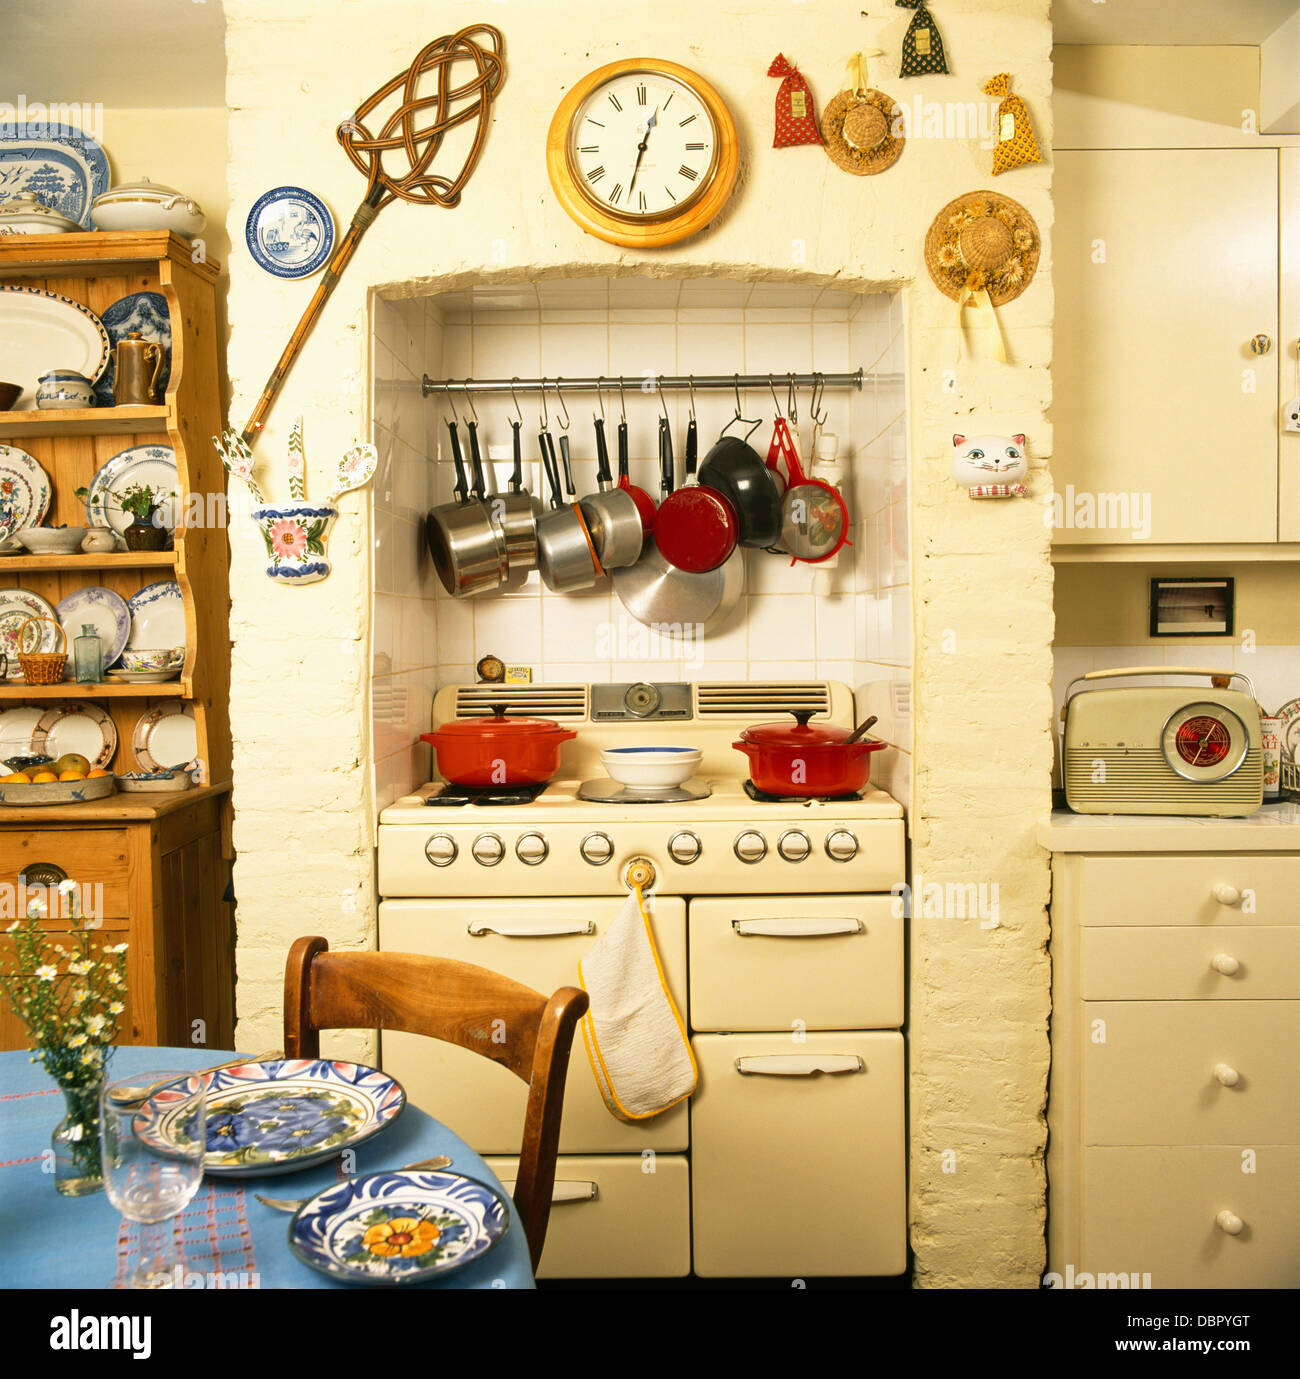 Old Fashioned Kitchen Pans On Rack Above Cream Range Oven In Old Fashioned Cream Kitchen